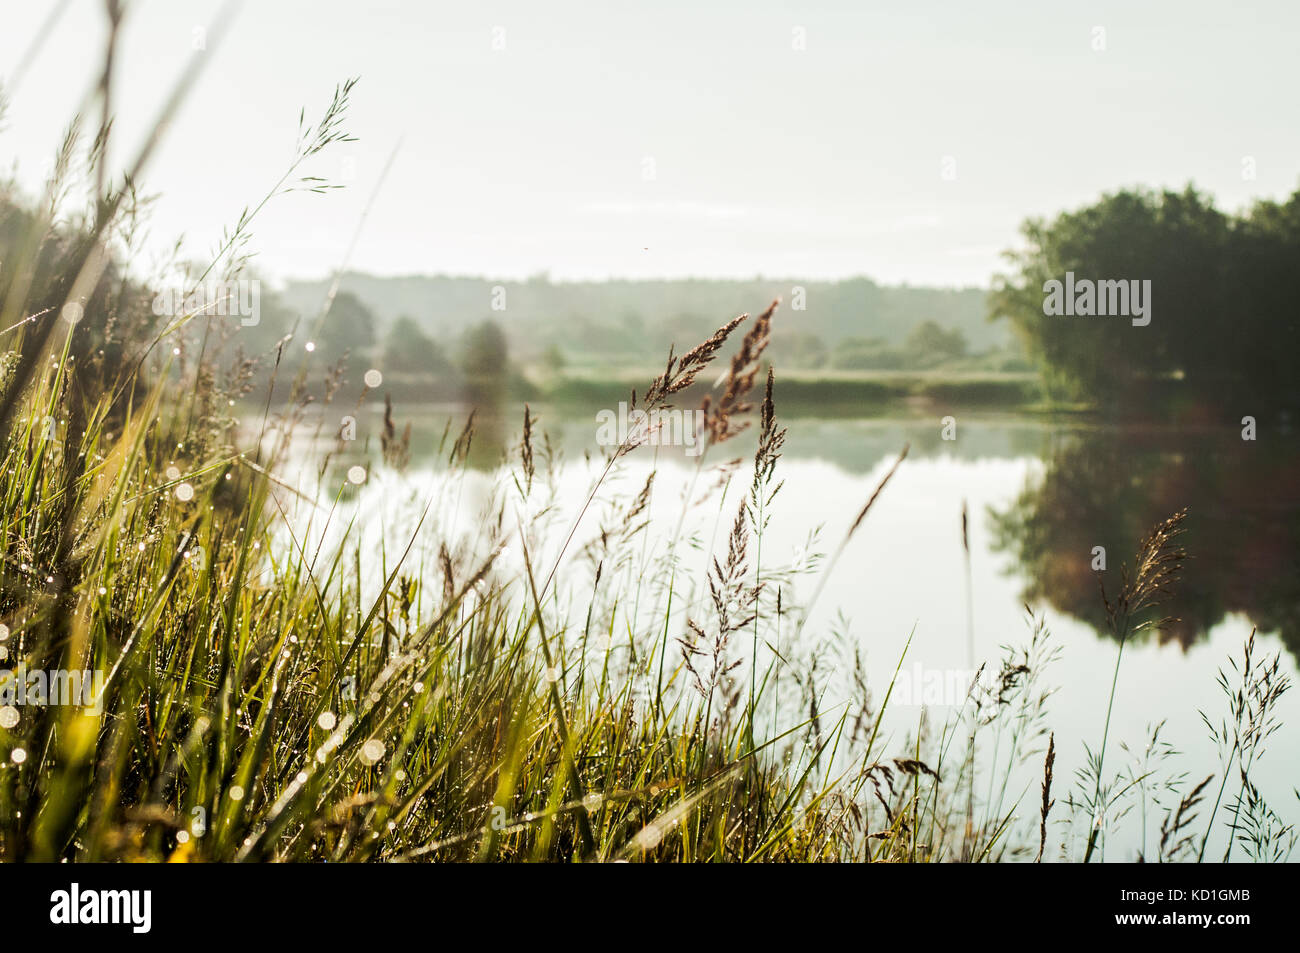 Romantic morning landscape with lake and tree reflections on it. - Stock Image